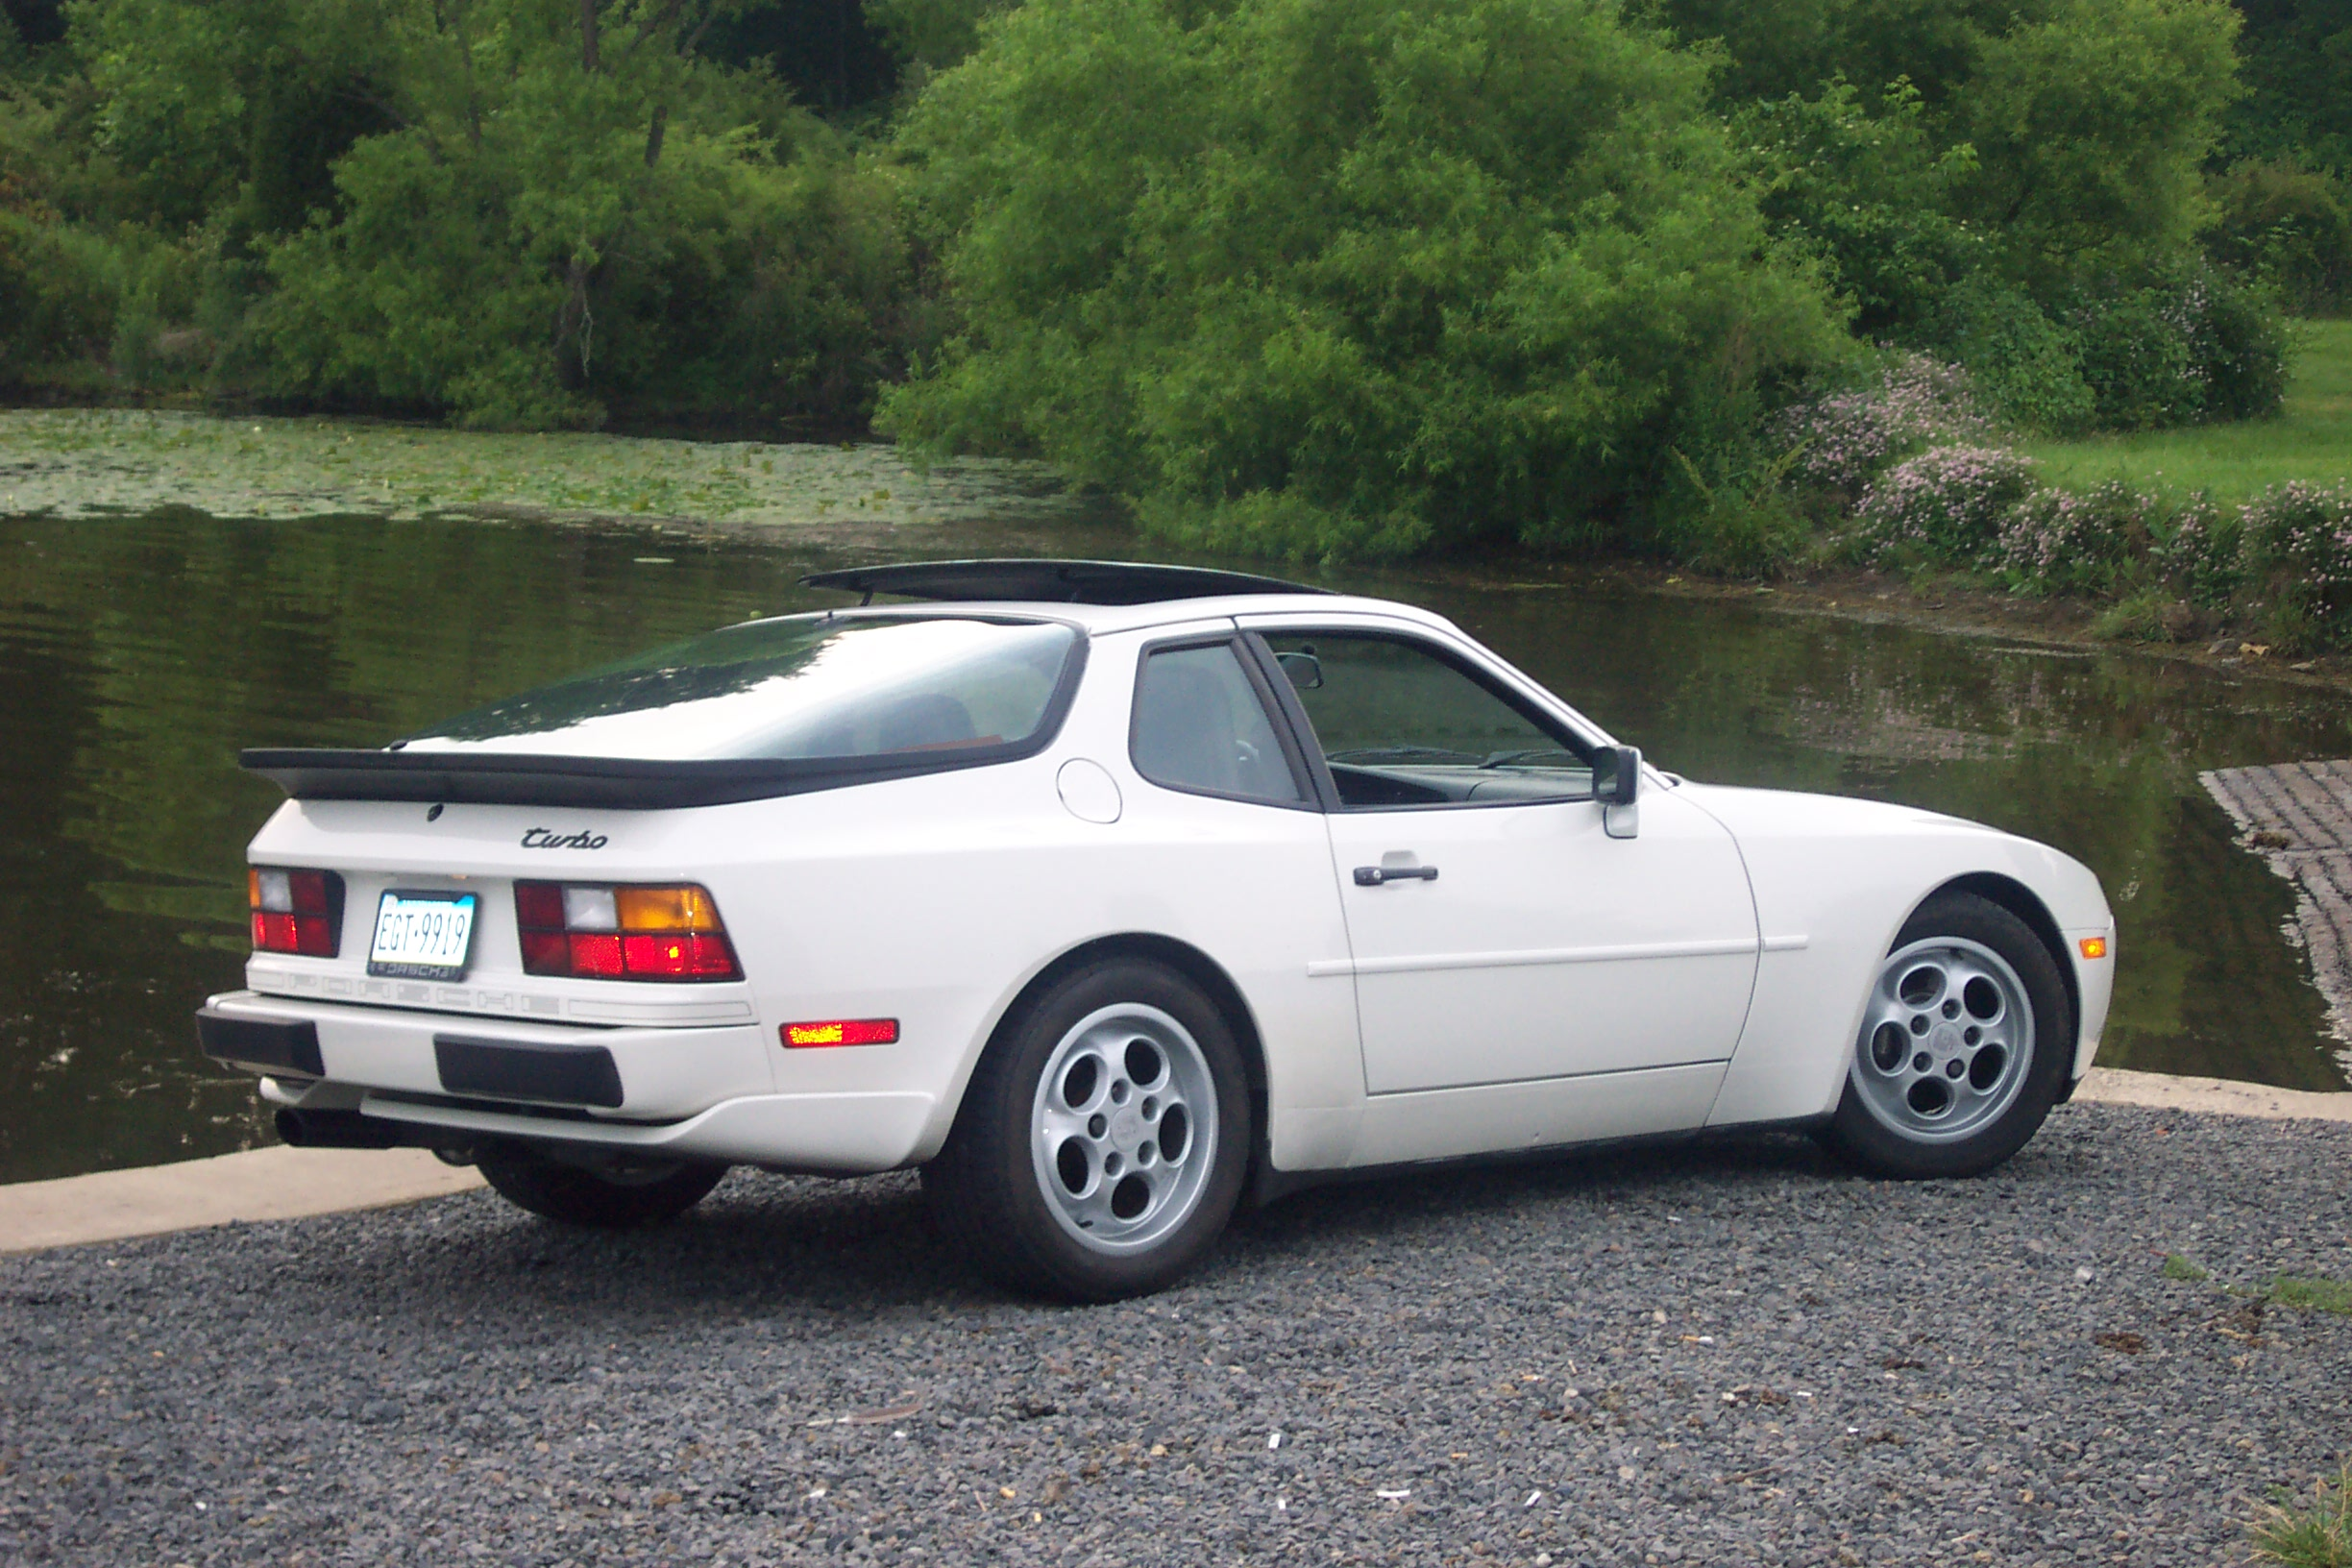 File:1987 Porsche 944 Turbo.JPG - Wikimedia Commons